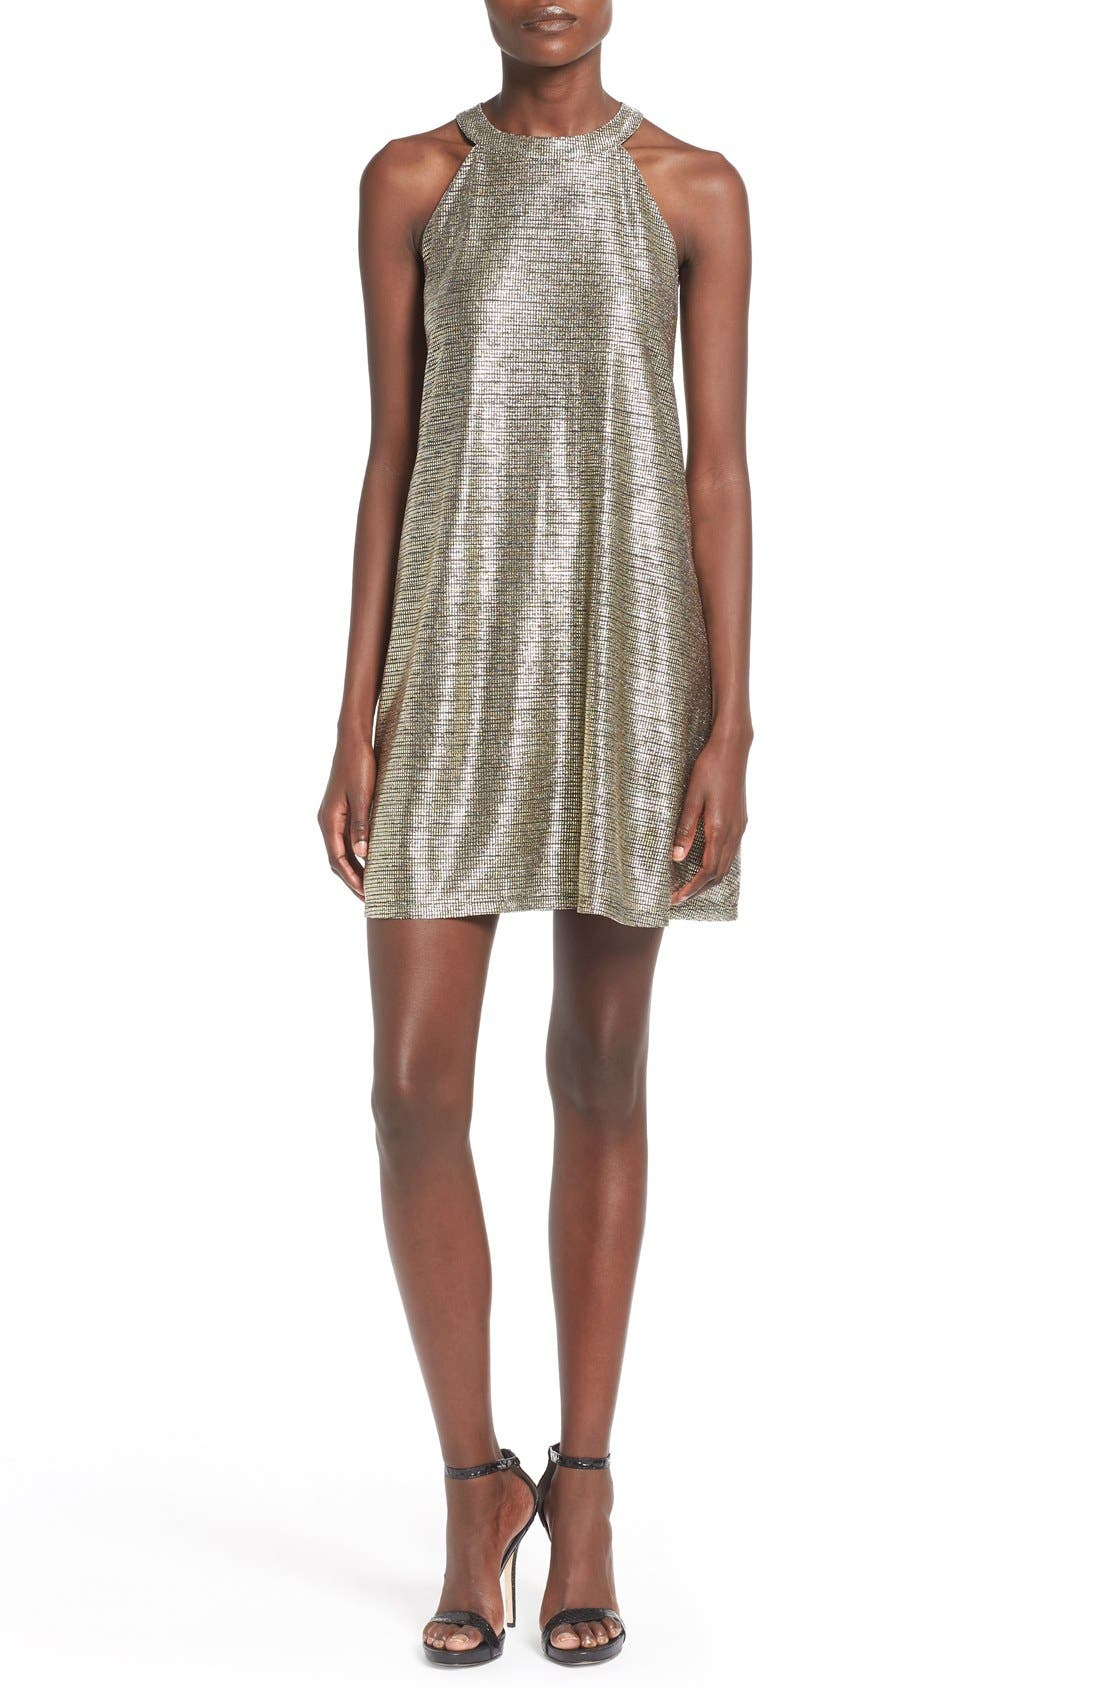 Alternate Image 1 Selected - One Clothing Metallic Halter Swing Dress